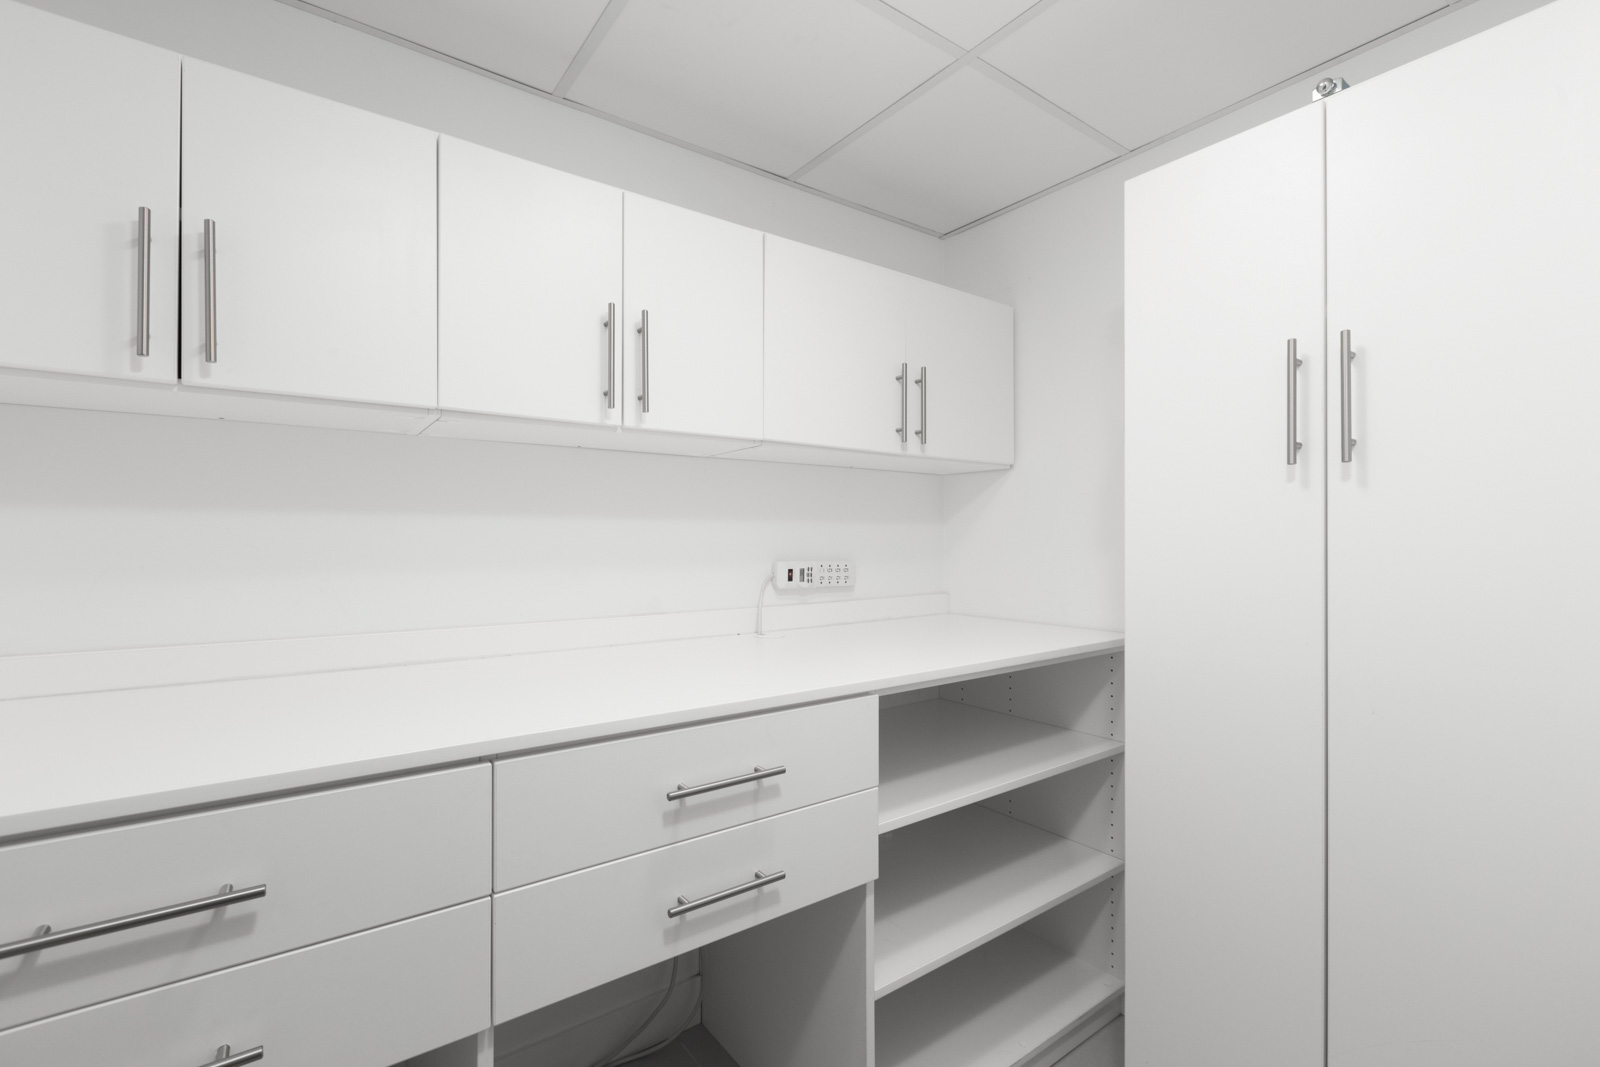 room with white cabinets and shelving and silver handles